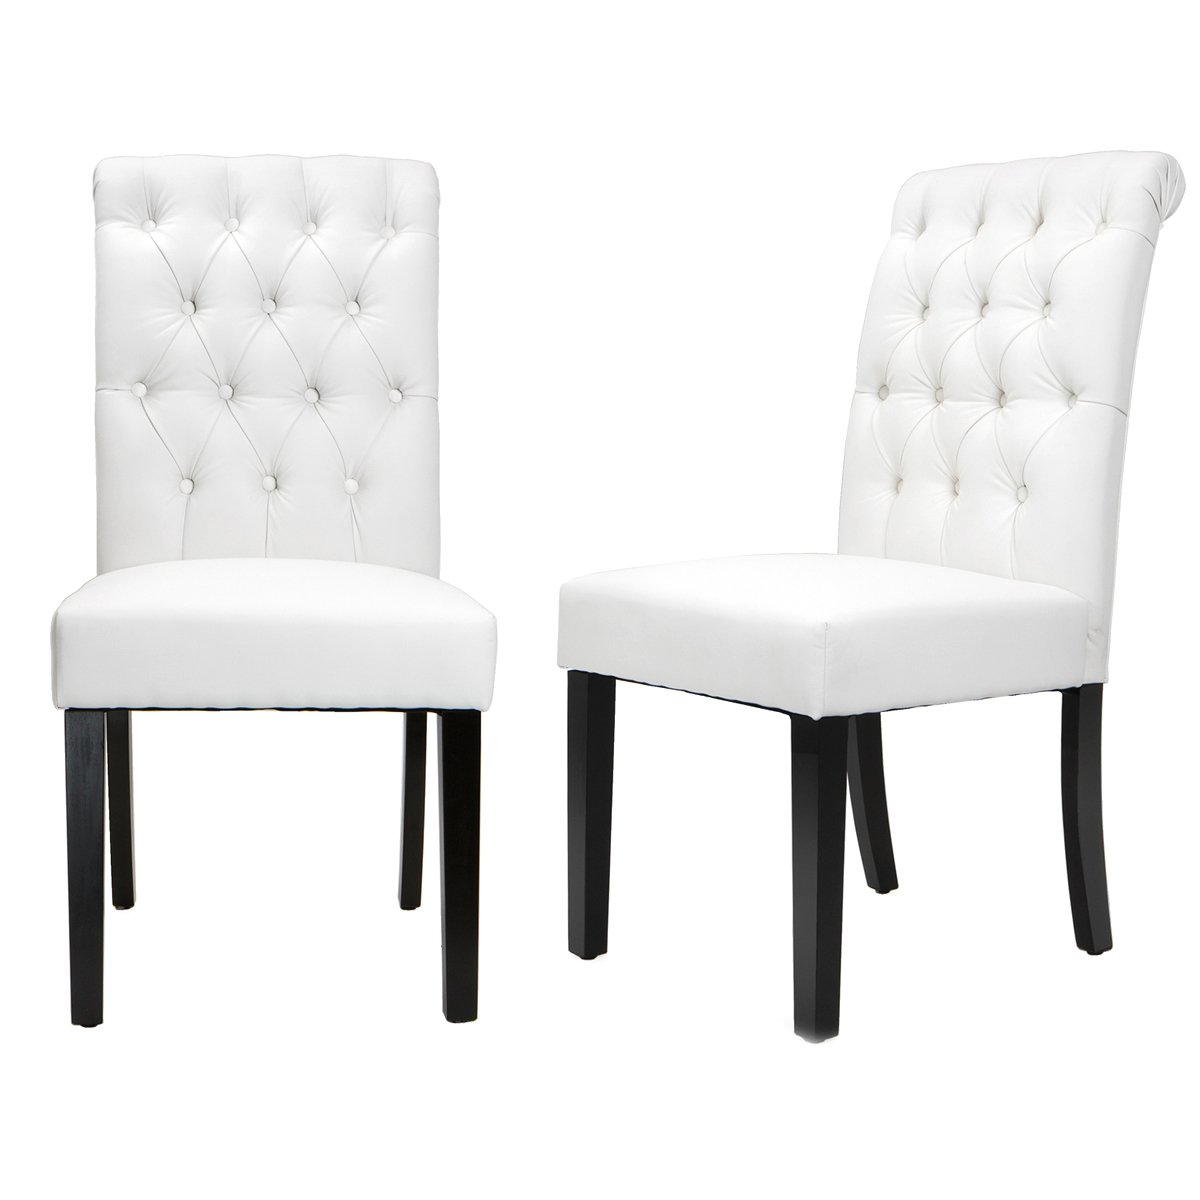 XtremepowerUS Padded Fabric Dining Chair, Set of 2 (White) 94047